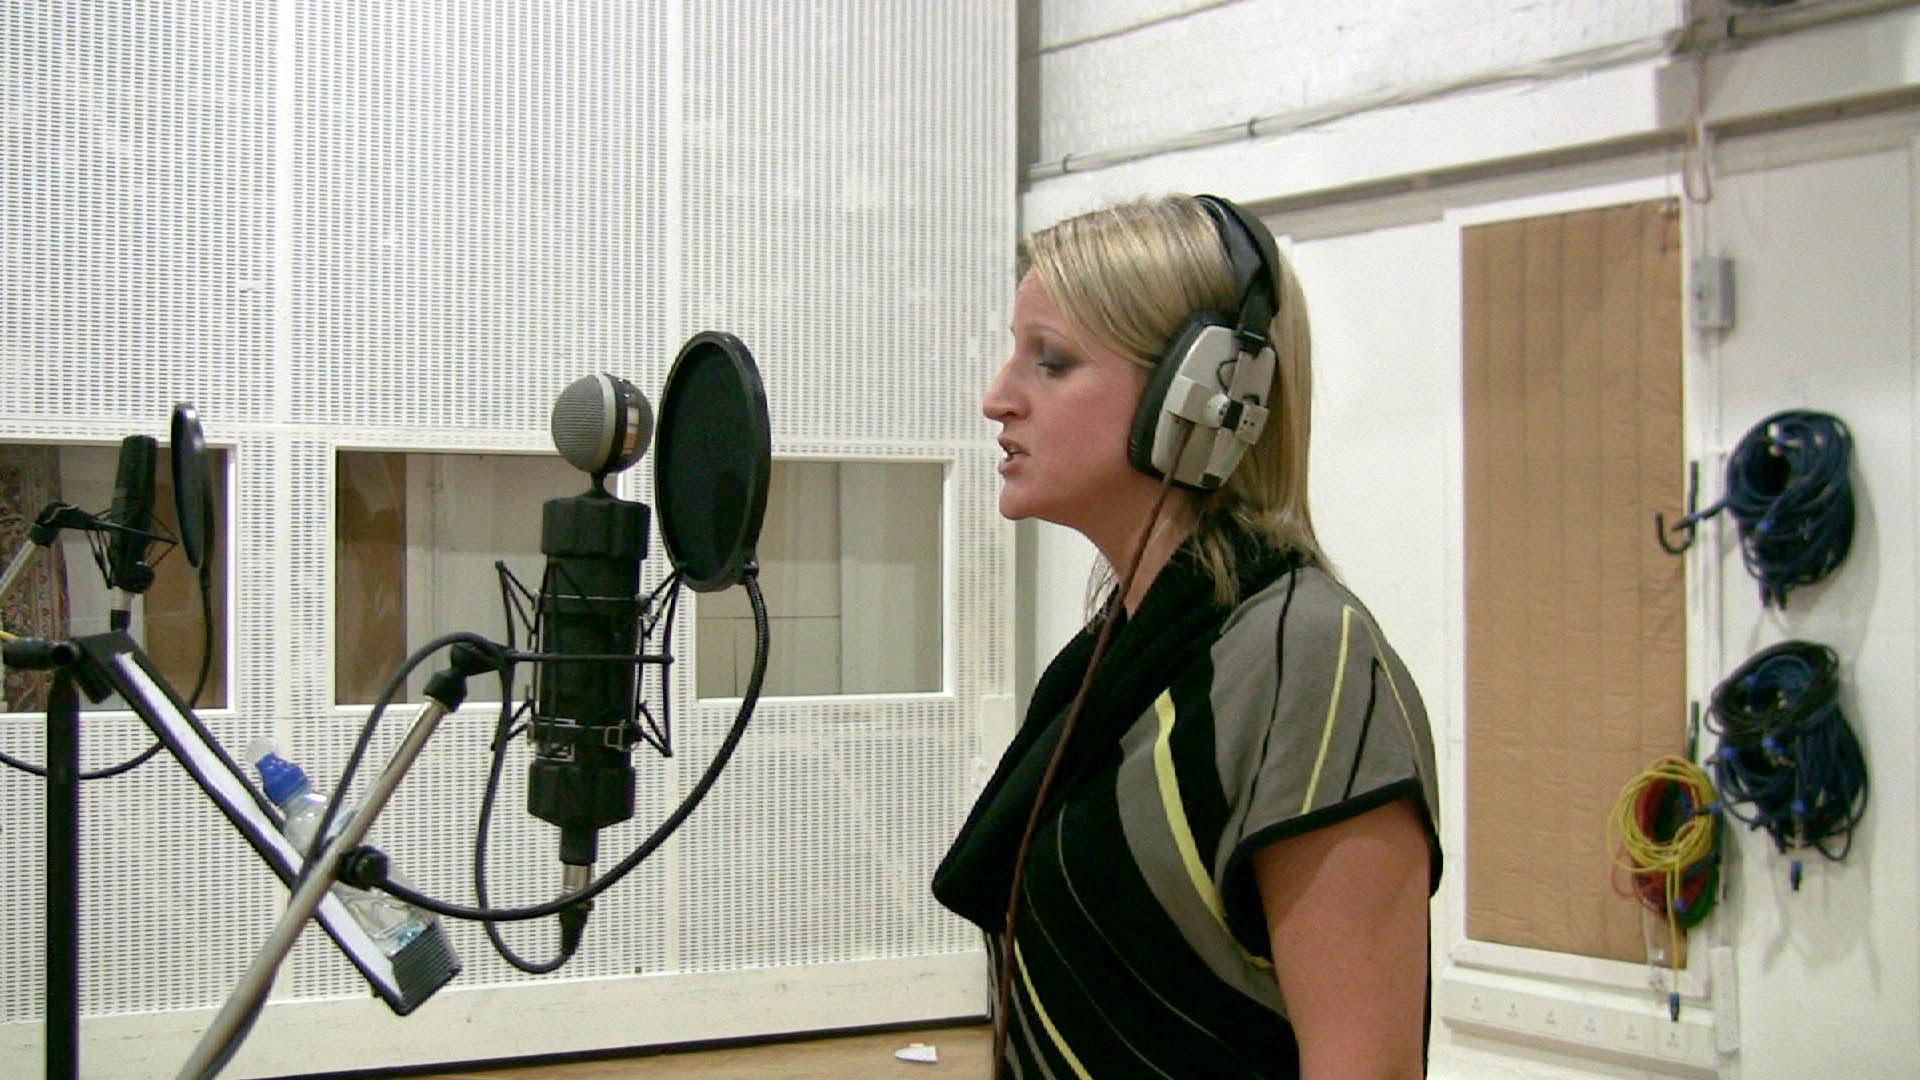 Singer in studio